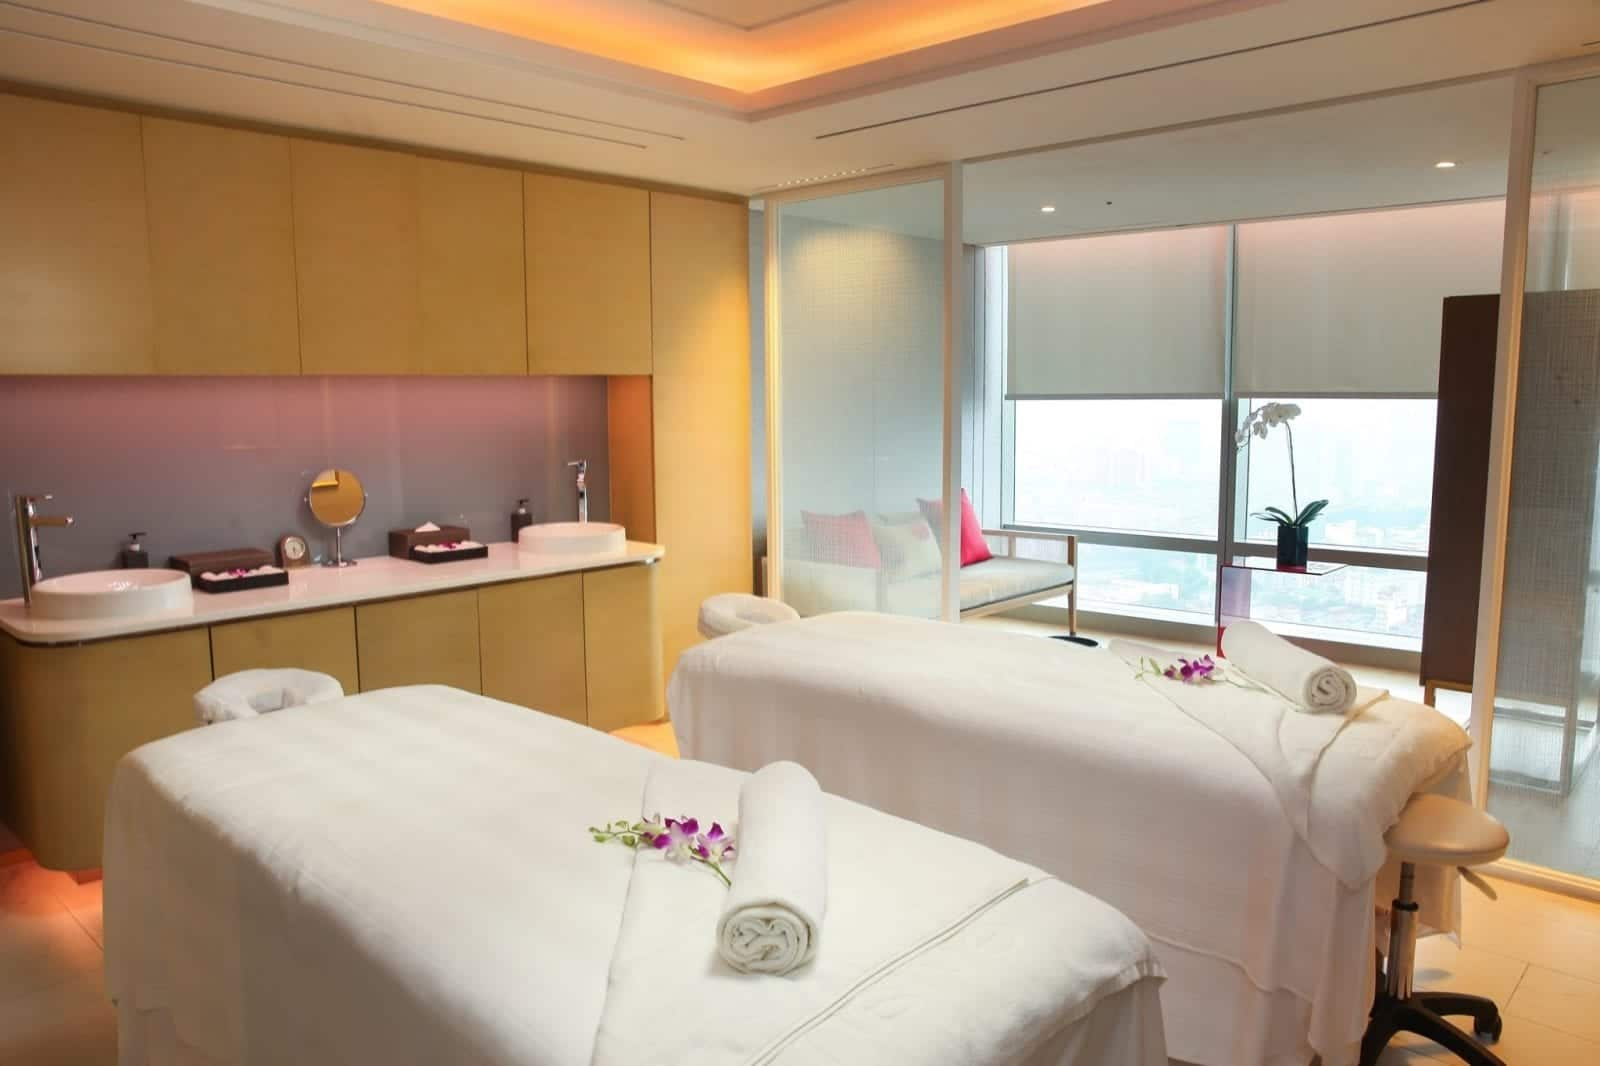 Image of two massage tables in the spa at the Lotte Hotel in Hanoi, Vietnam